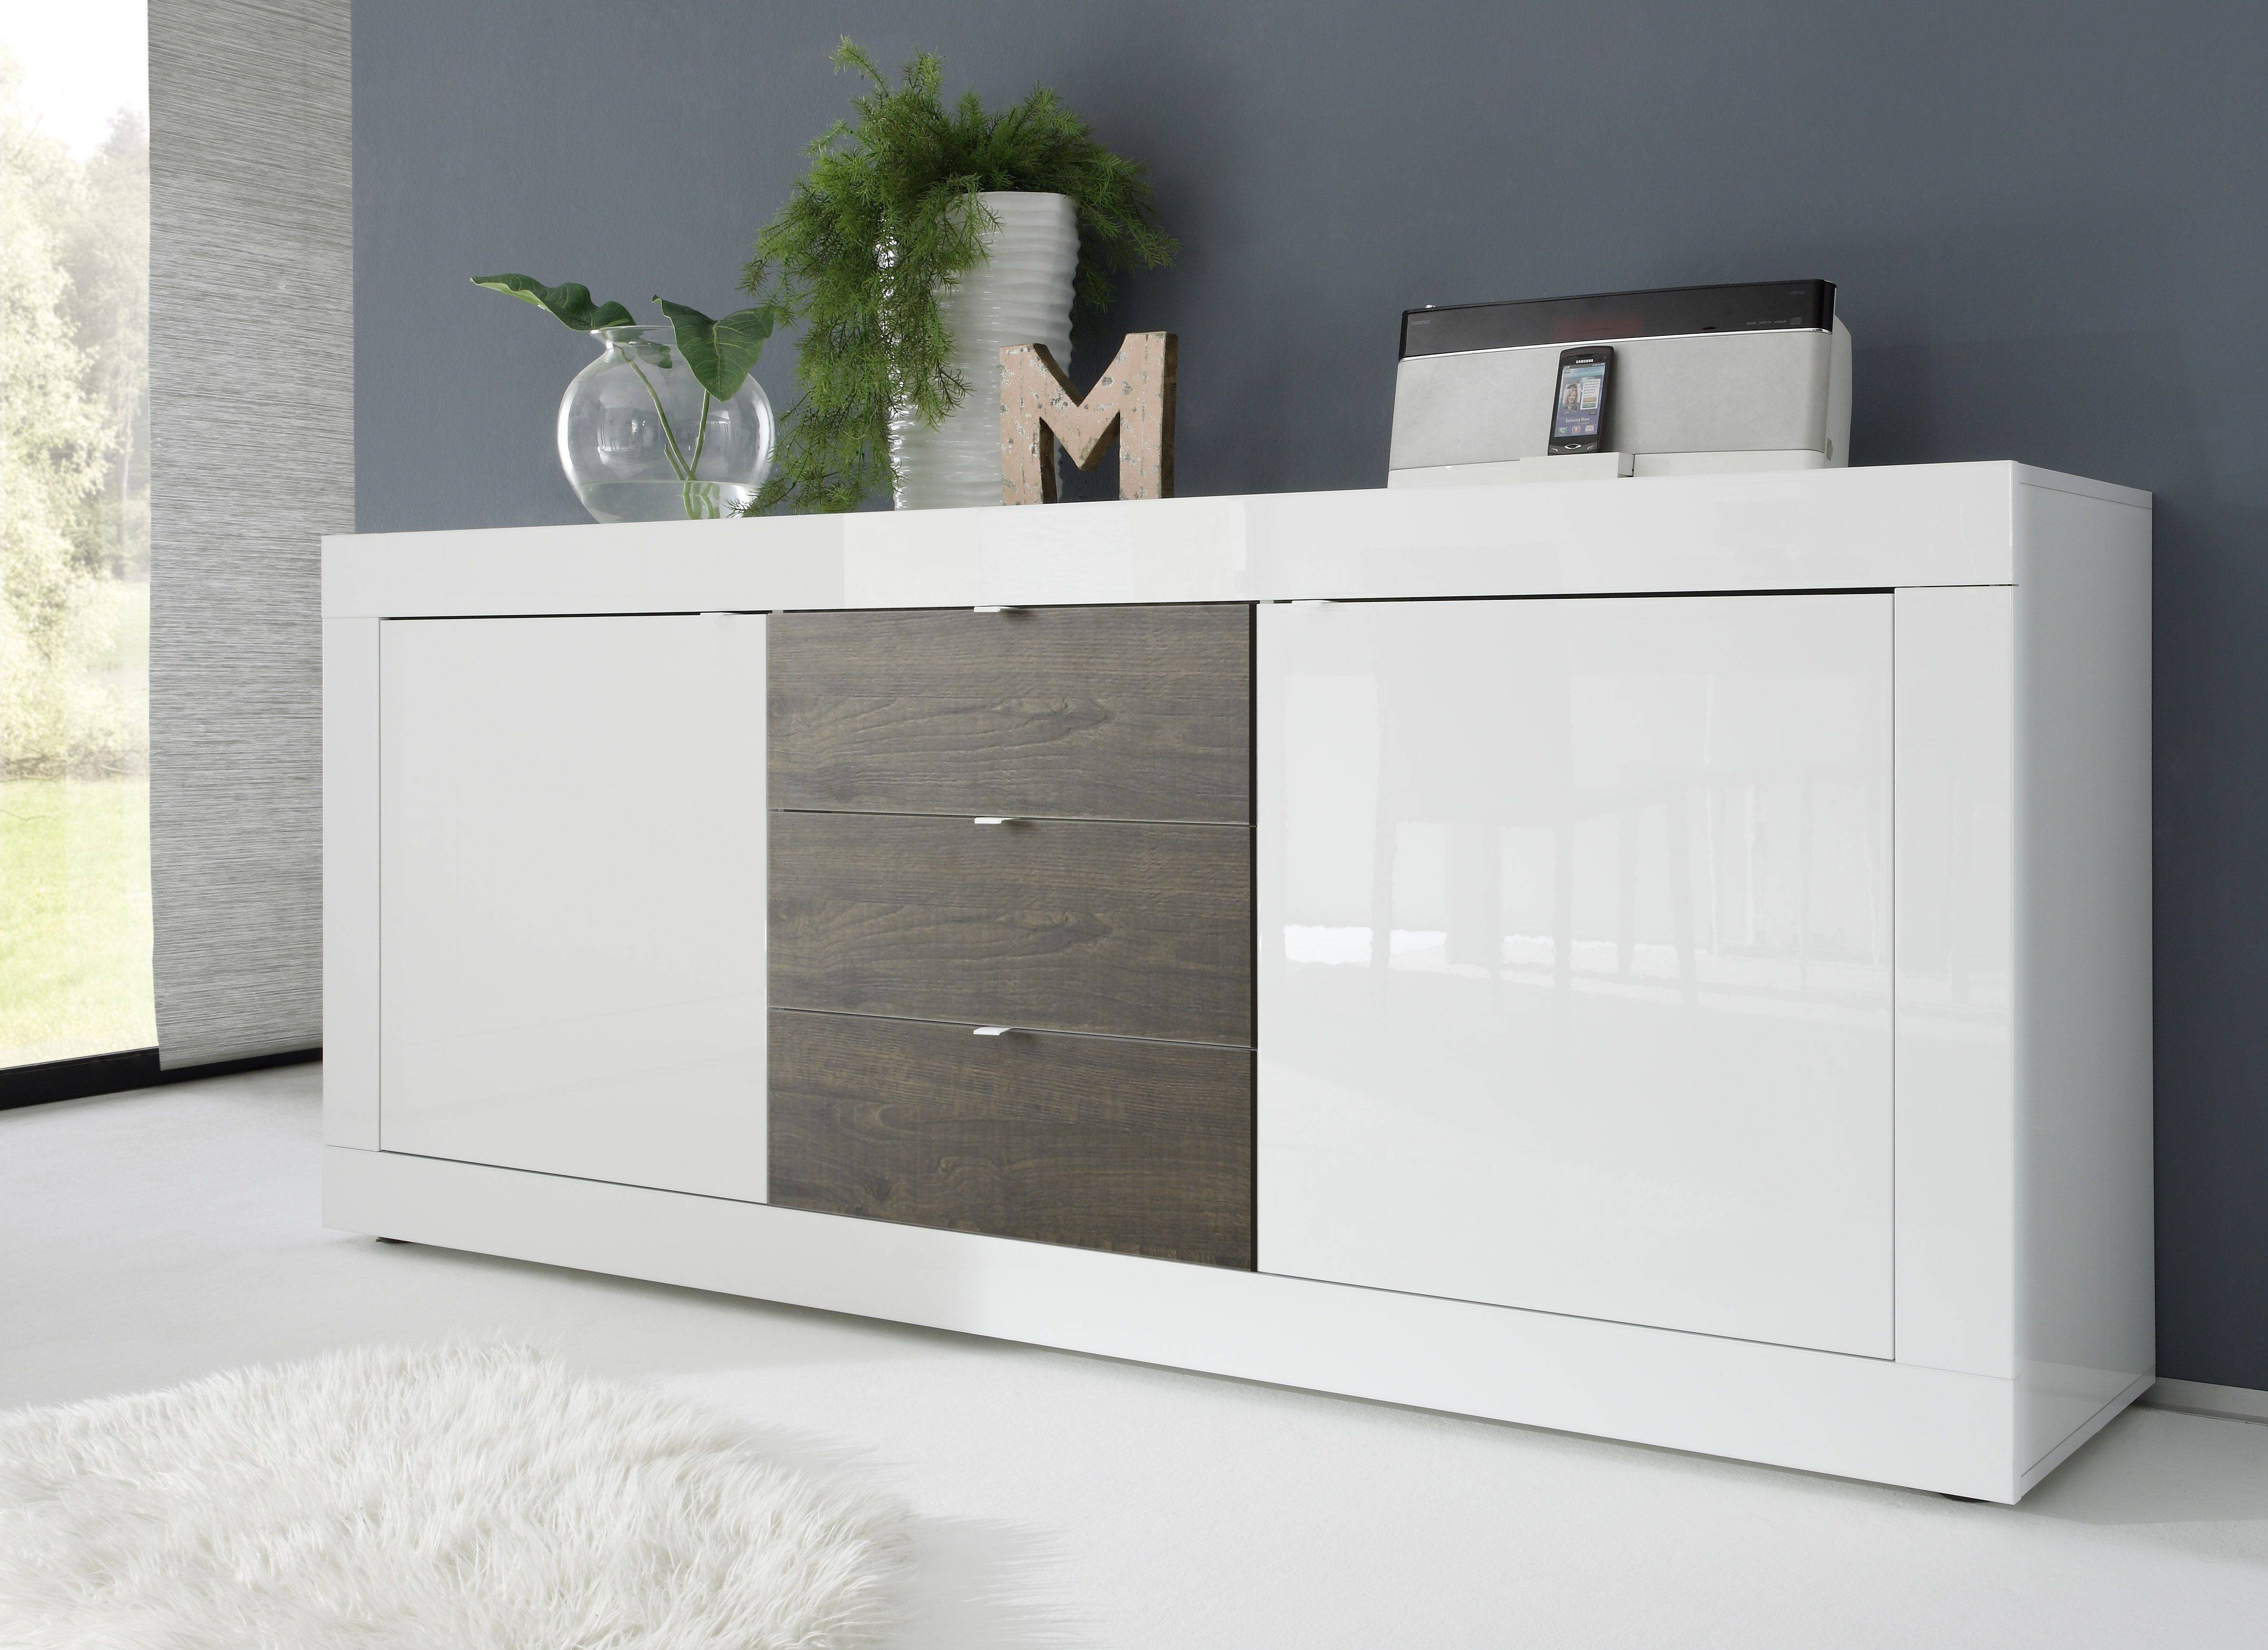 Dolcevita Three Door Sideboard In White Gloss - Sideboards - Sena inside Gloss White Sideboards (Image 12 of 30)